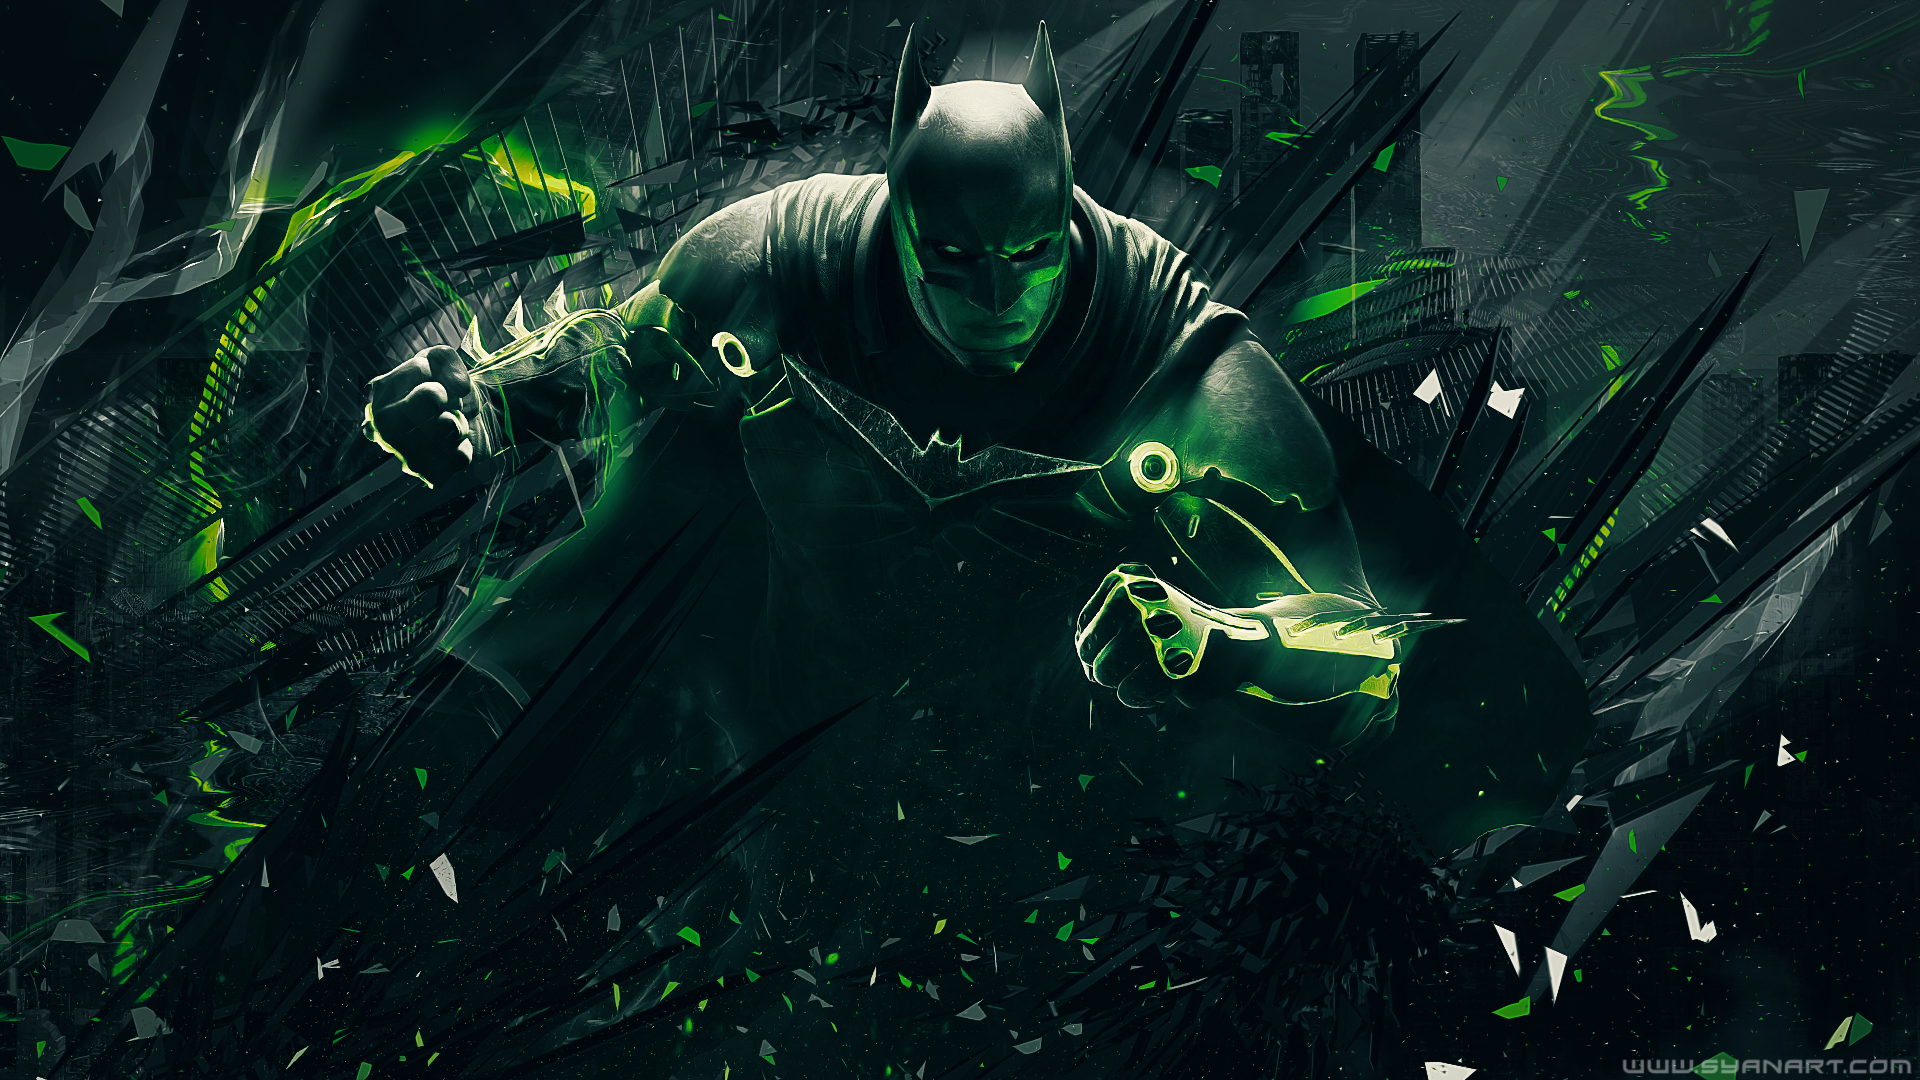 Injustice 2 Batman Wallpaper NXL GAMING